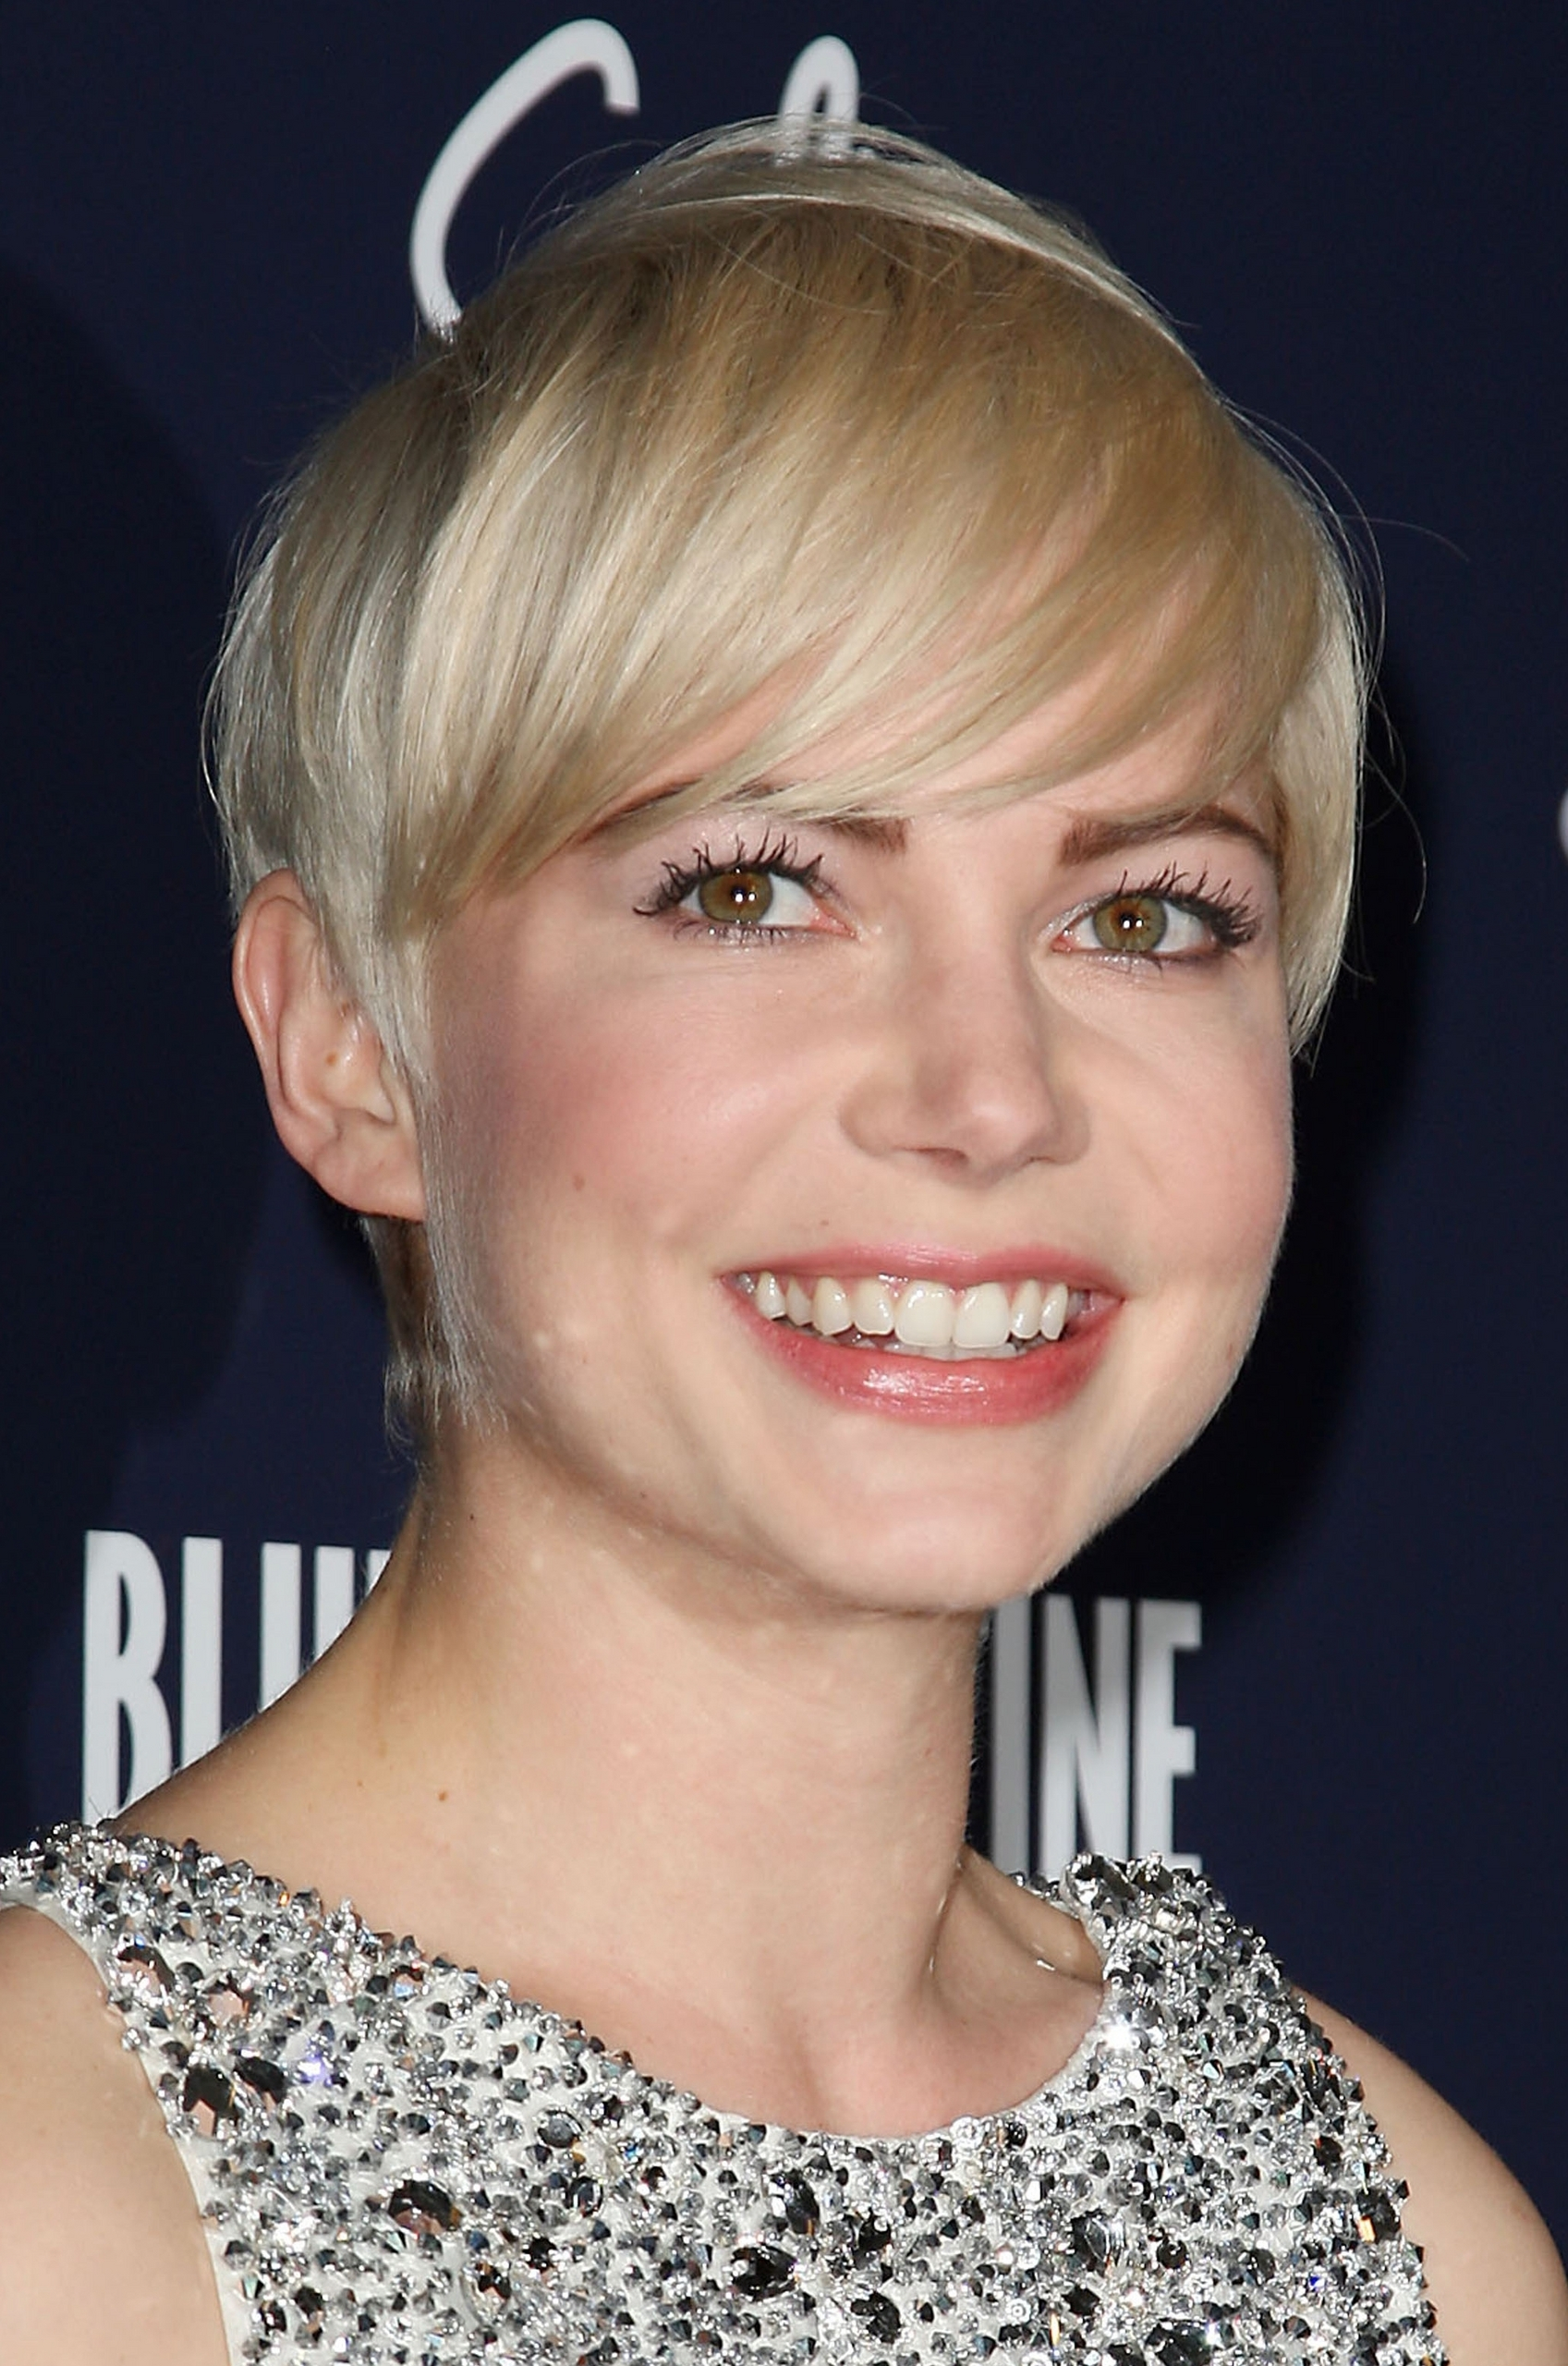 Michelle Williams - Wallpaper Hot